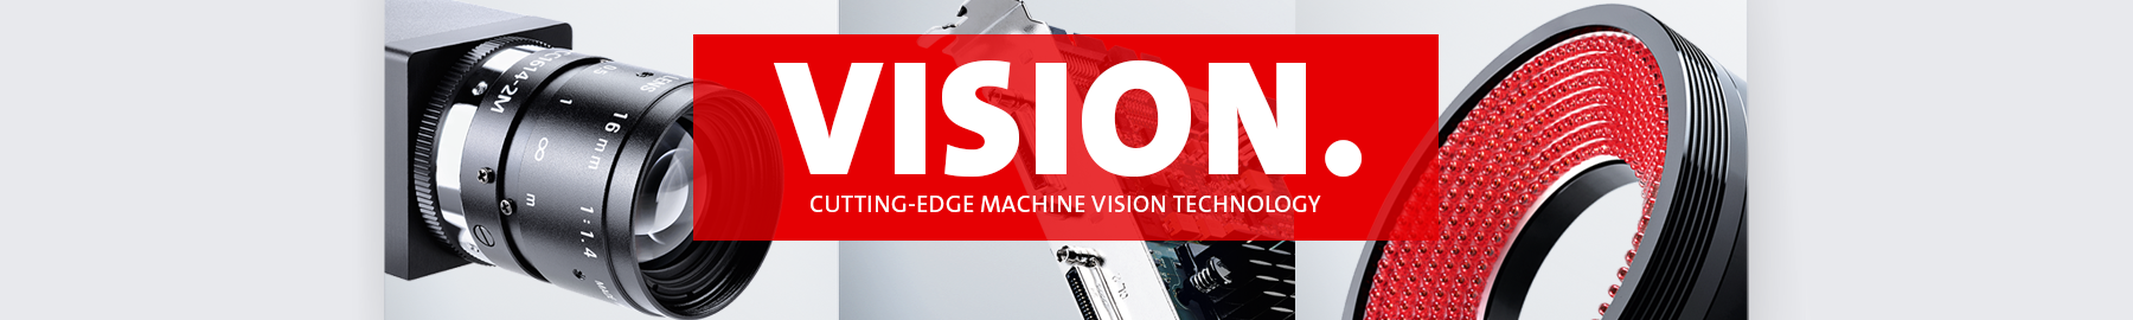 VISION - Cutting-edge machine vision technology